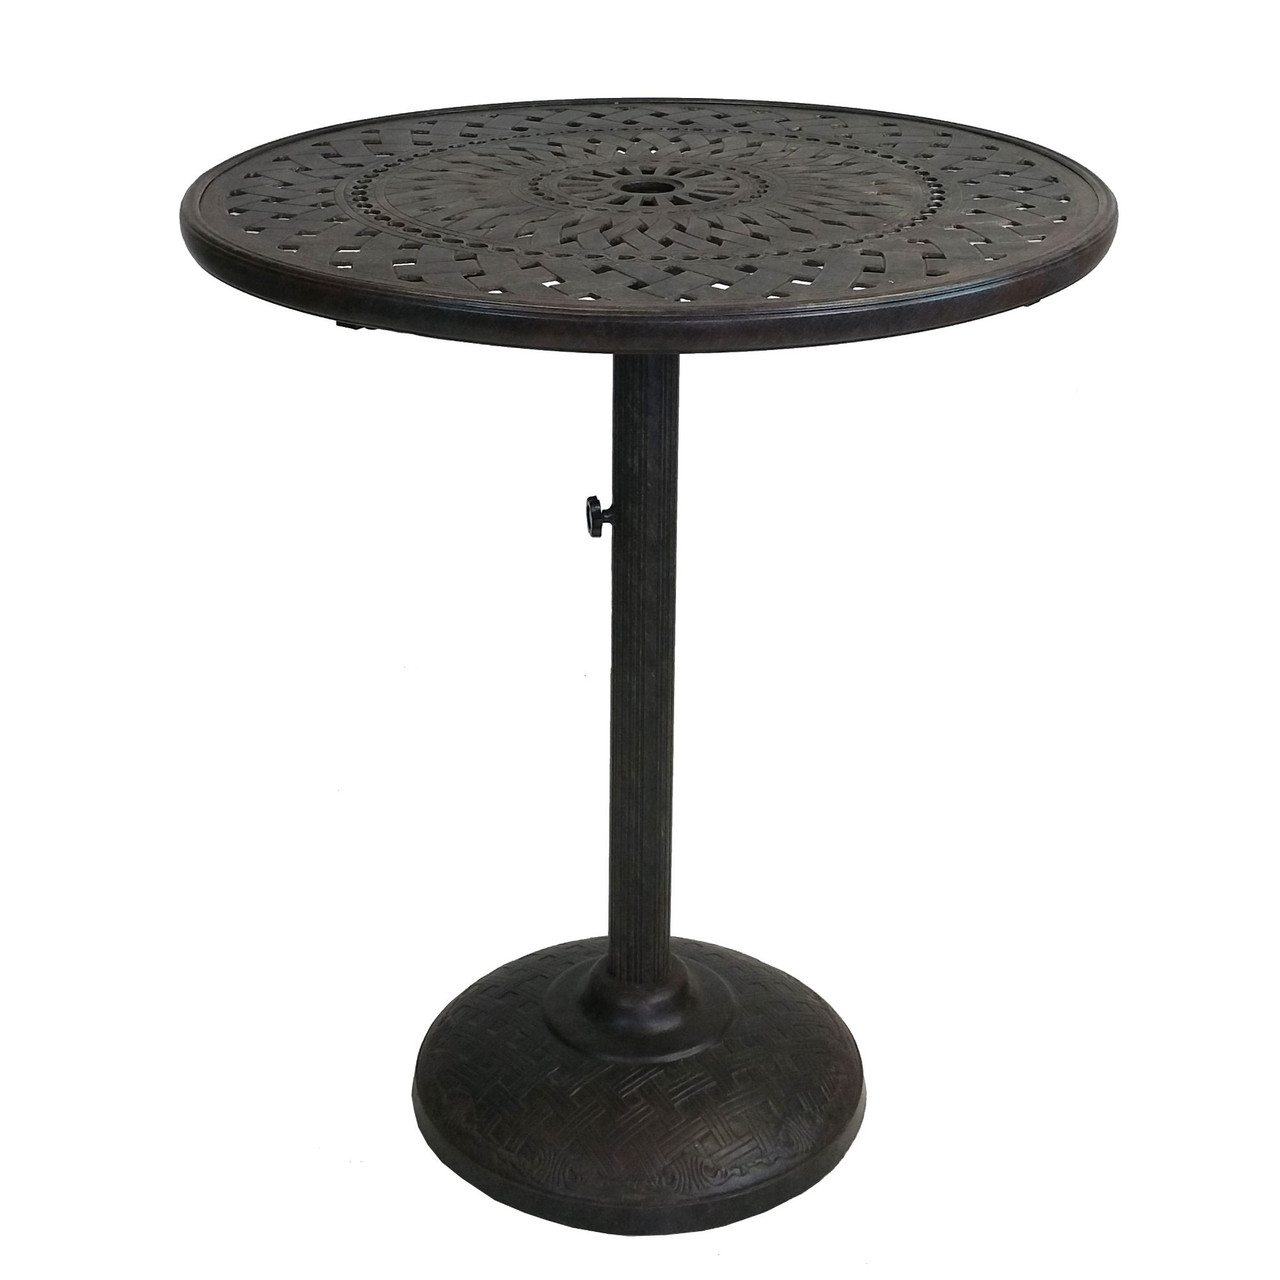 40 75 brown and black round ornate outdoor patio furniture bar table